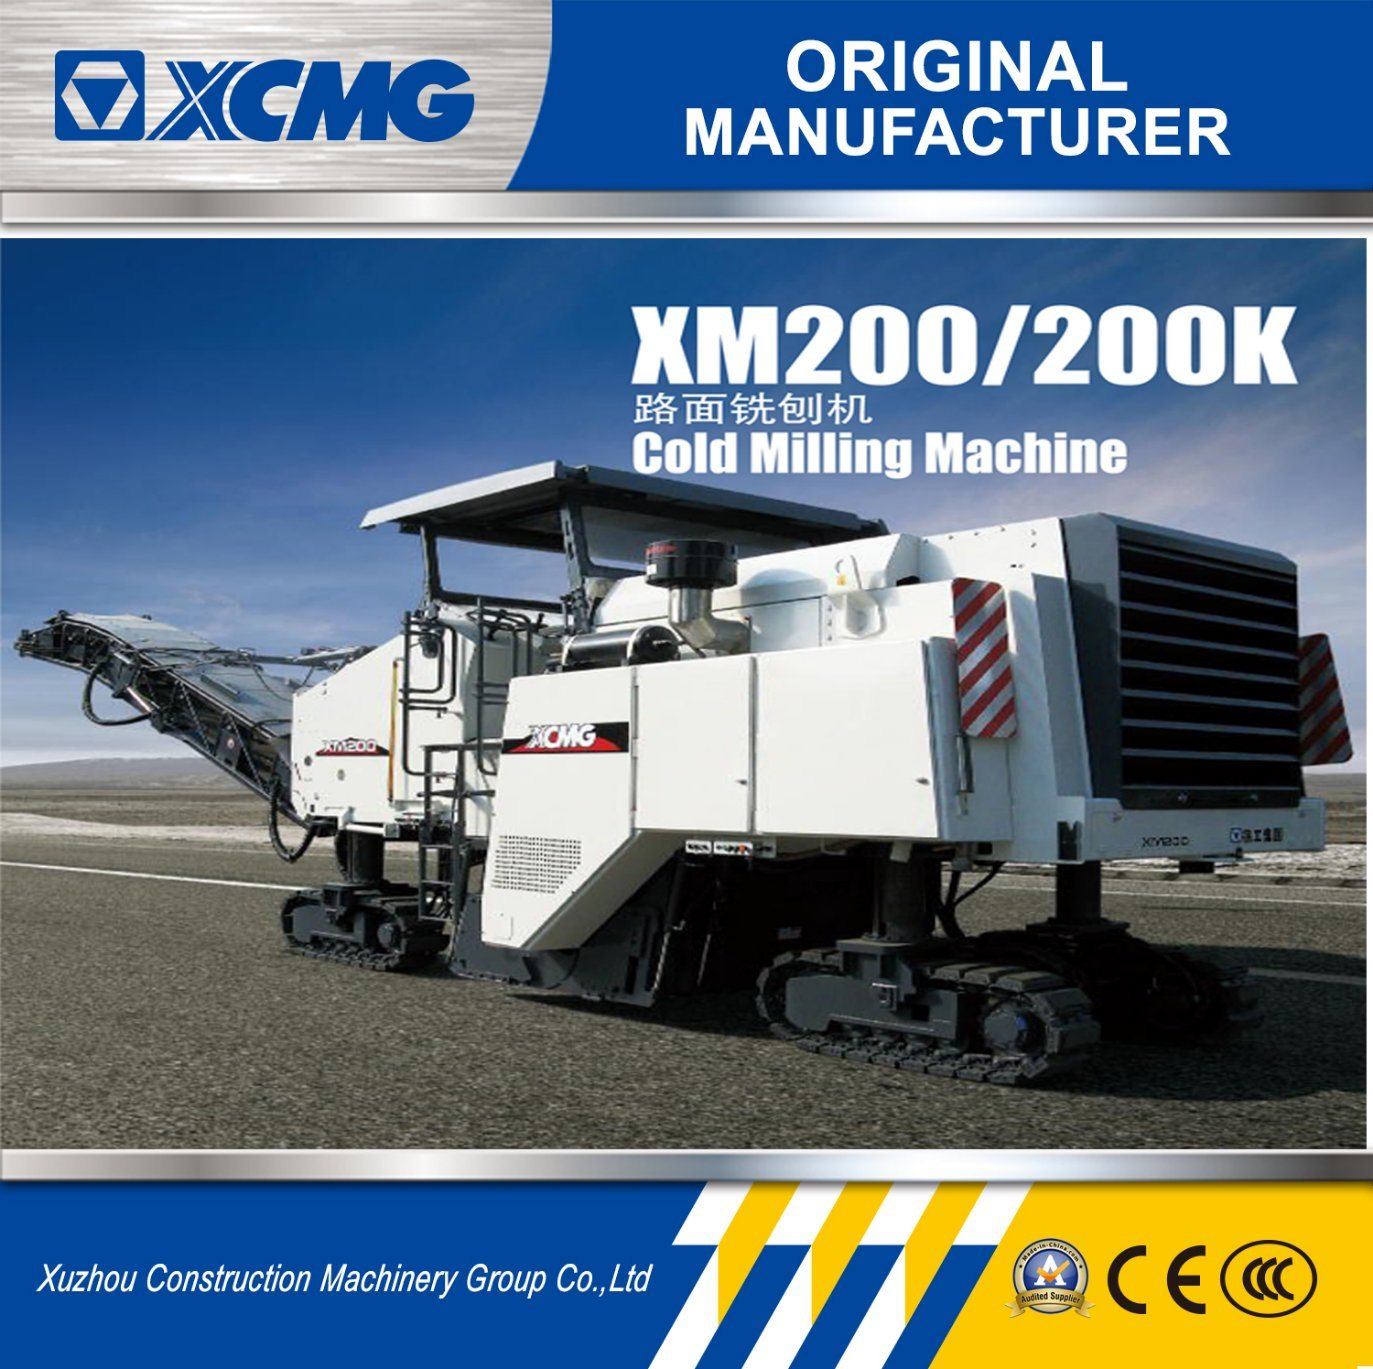 [Hot Item] Used Heavy Equipment Parts Xm200K Cold Milling Machine Hot Sale